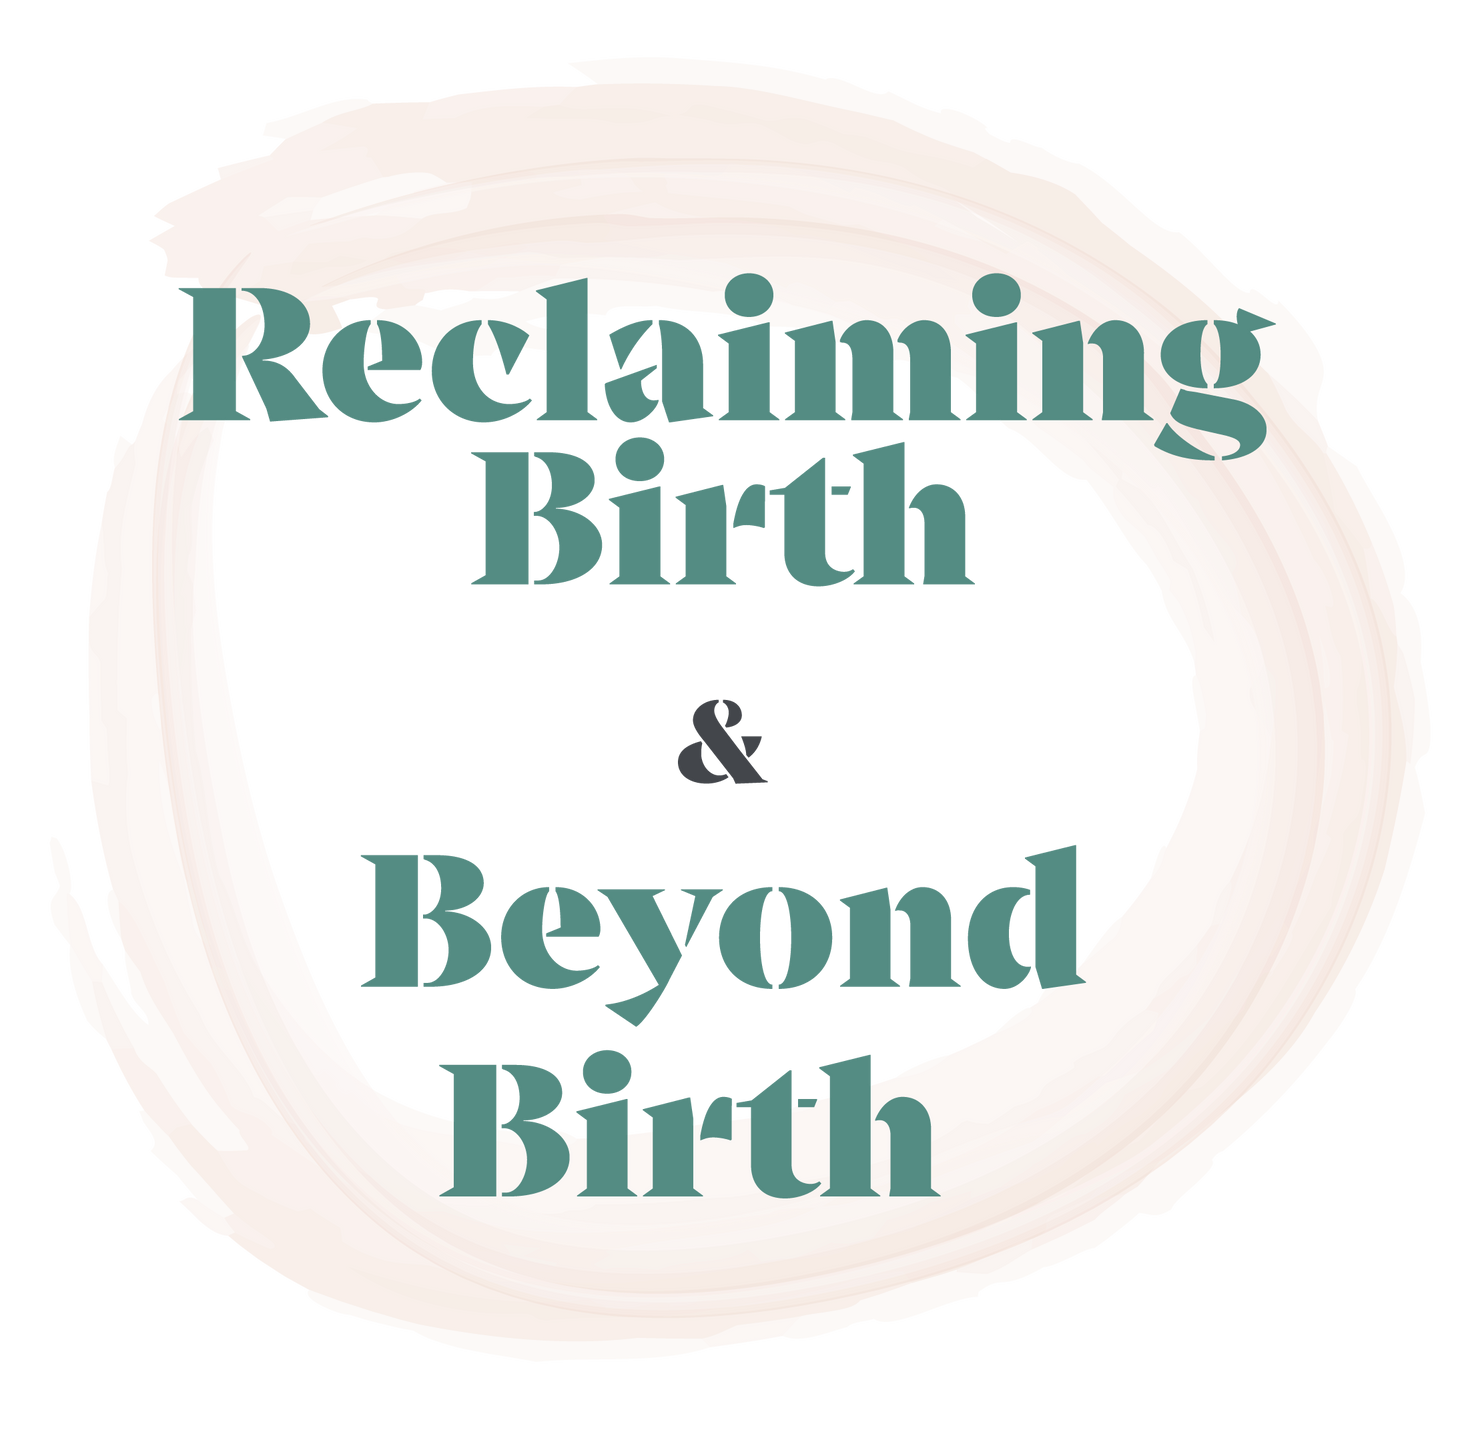 Reclaiming Birth & Beyond Birth Online Course Logos